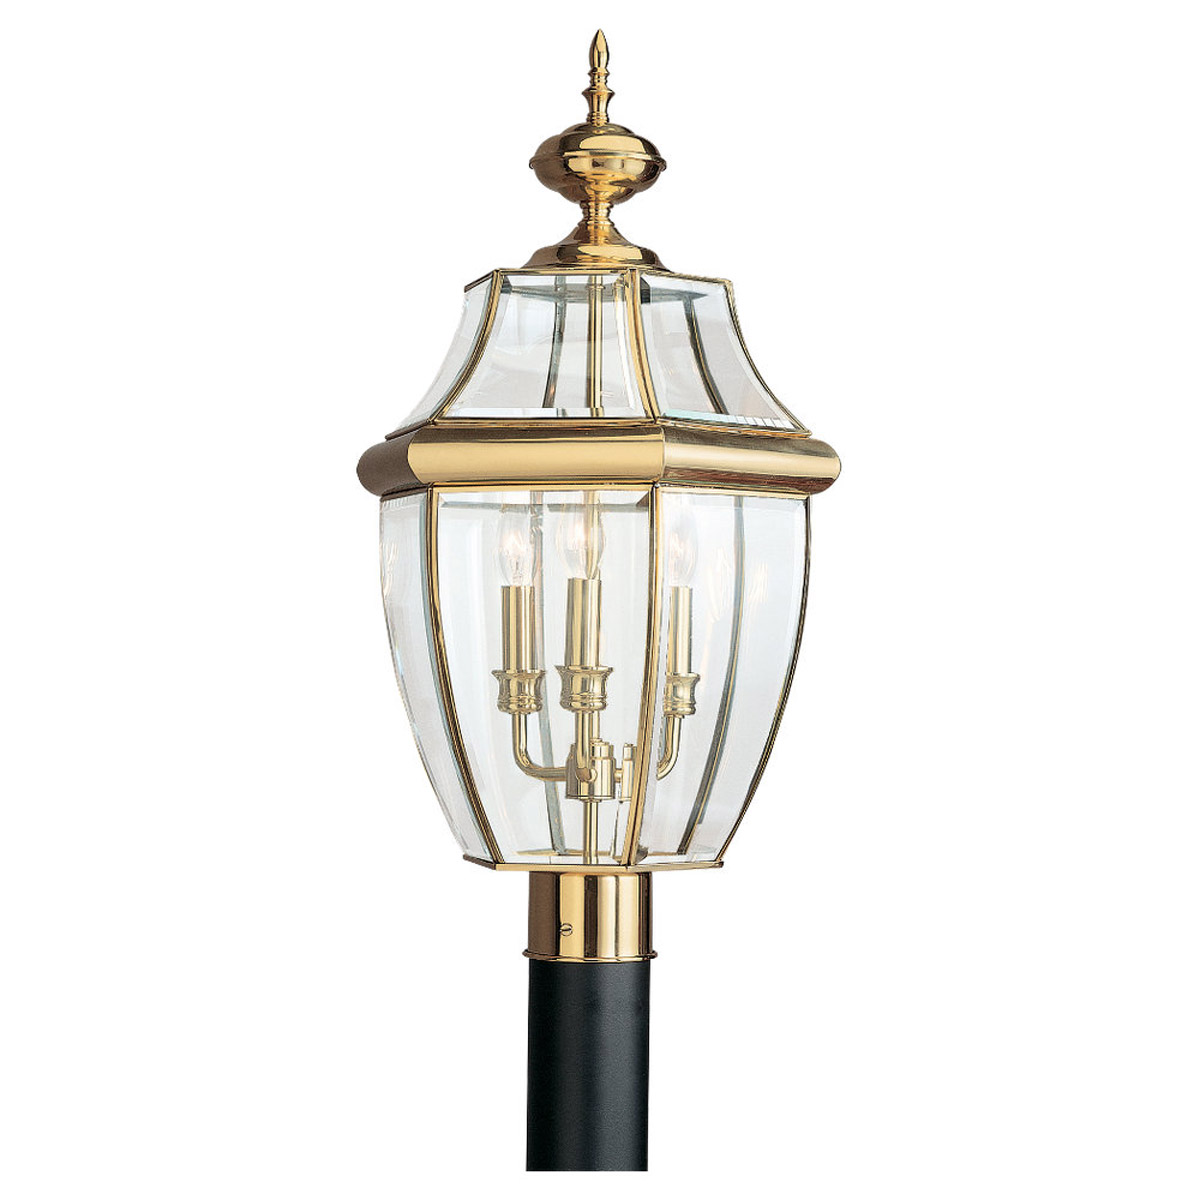 Sea Gull Lighting Lancaster 3 Light Outdoor Post Lantern in Polished Brass 8239-02